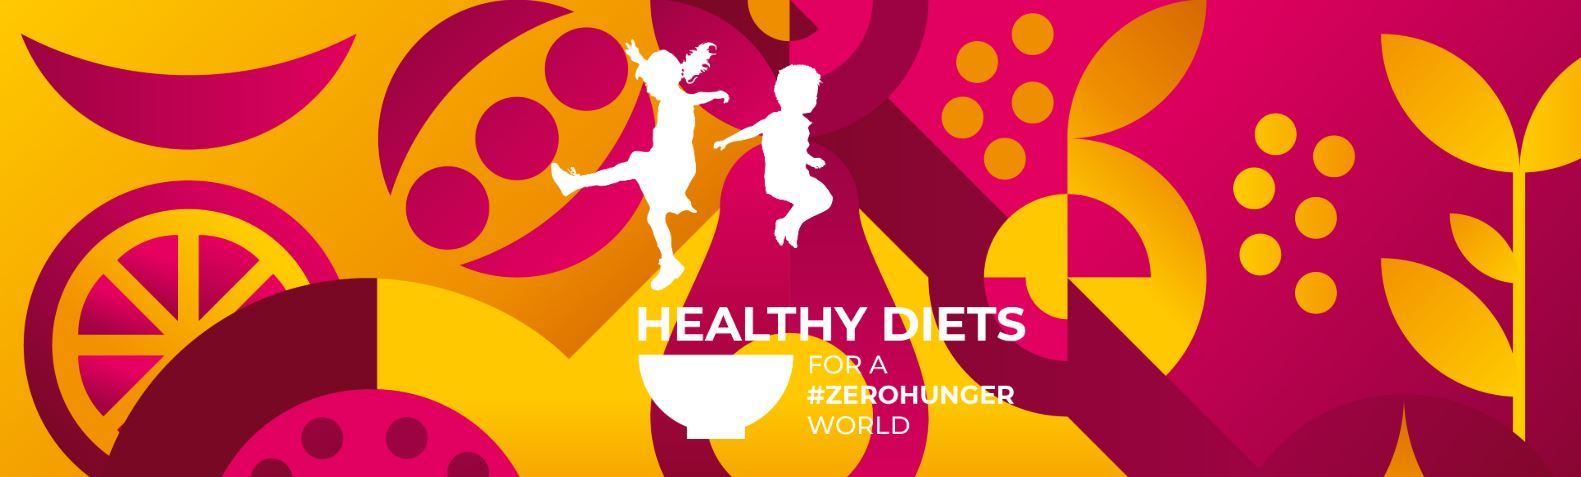 World Food Day illustration - Healthy diets for a #ZeroHunger World